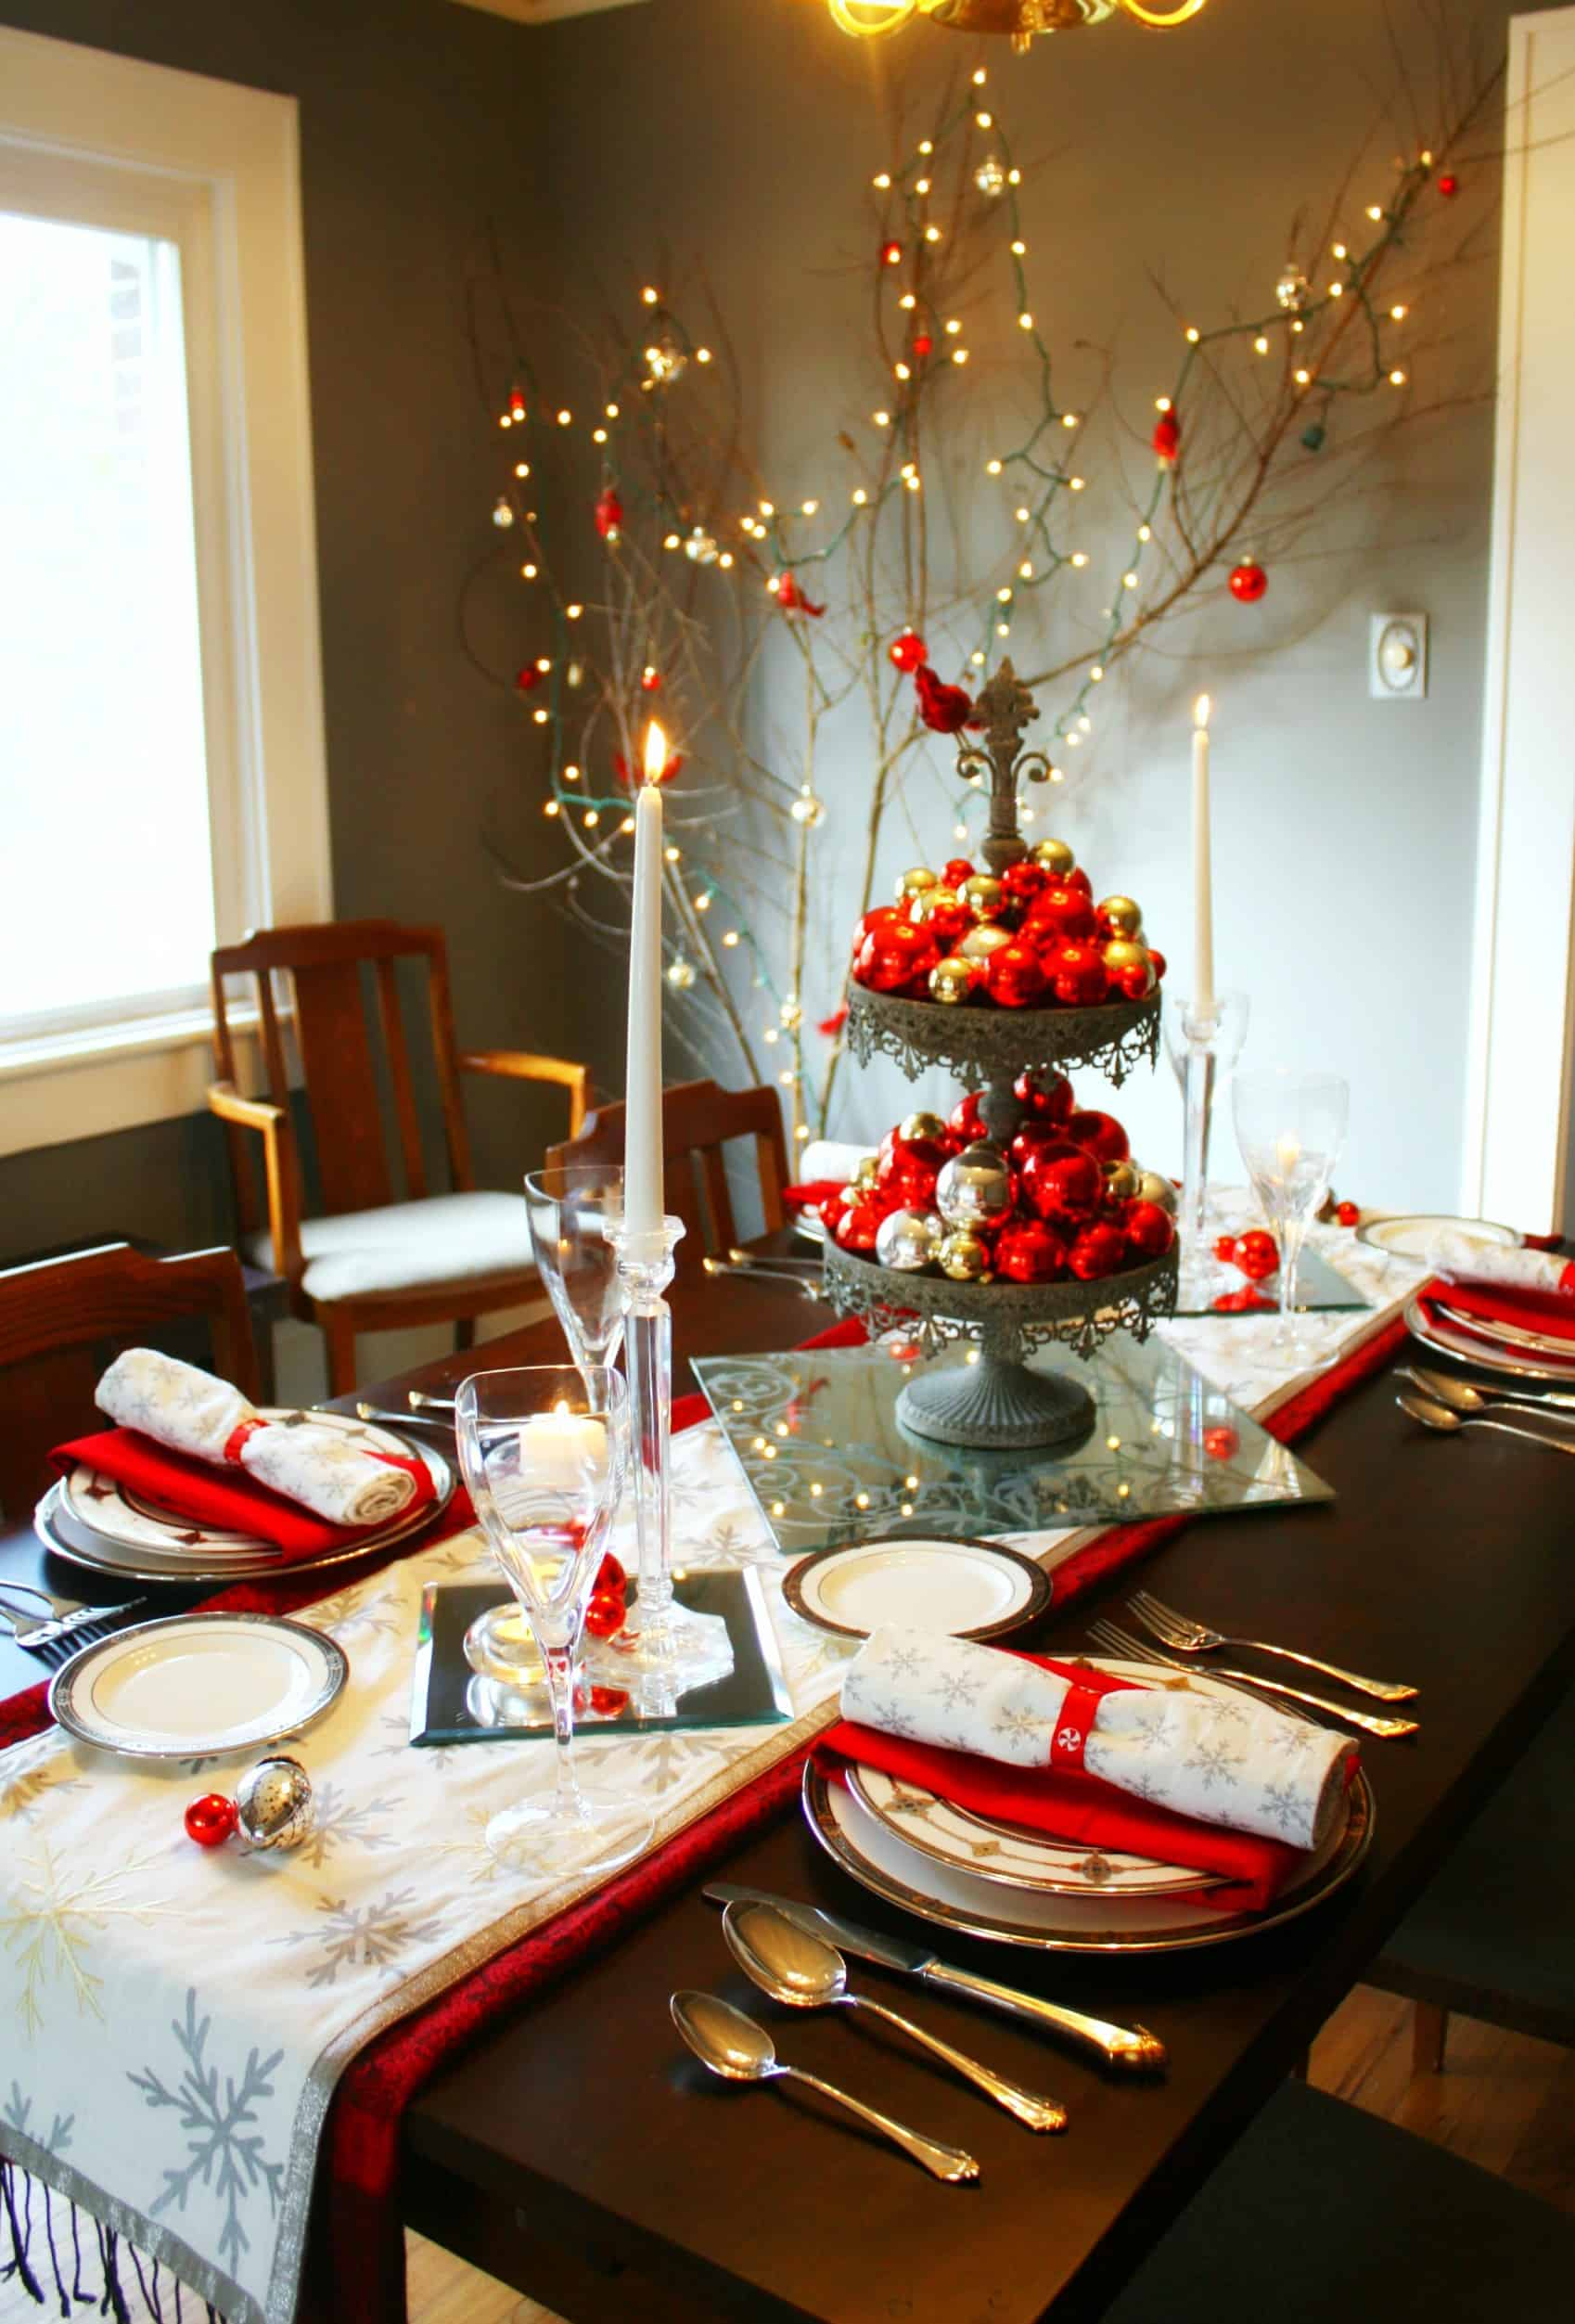 simple dma any kind homes dinner make dress photo perfect decorations your table ideas dining